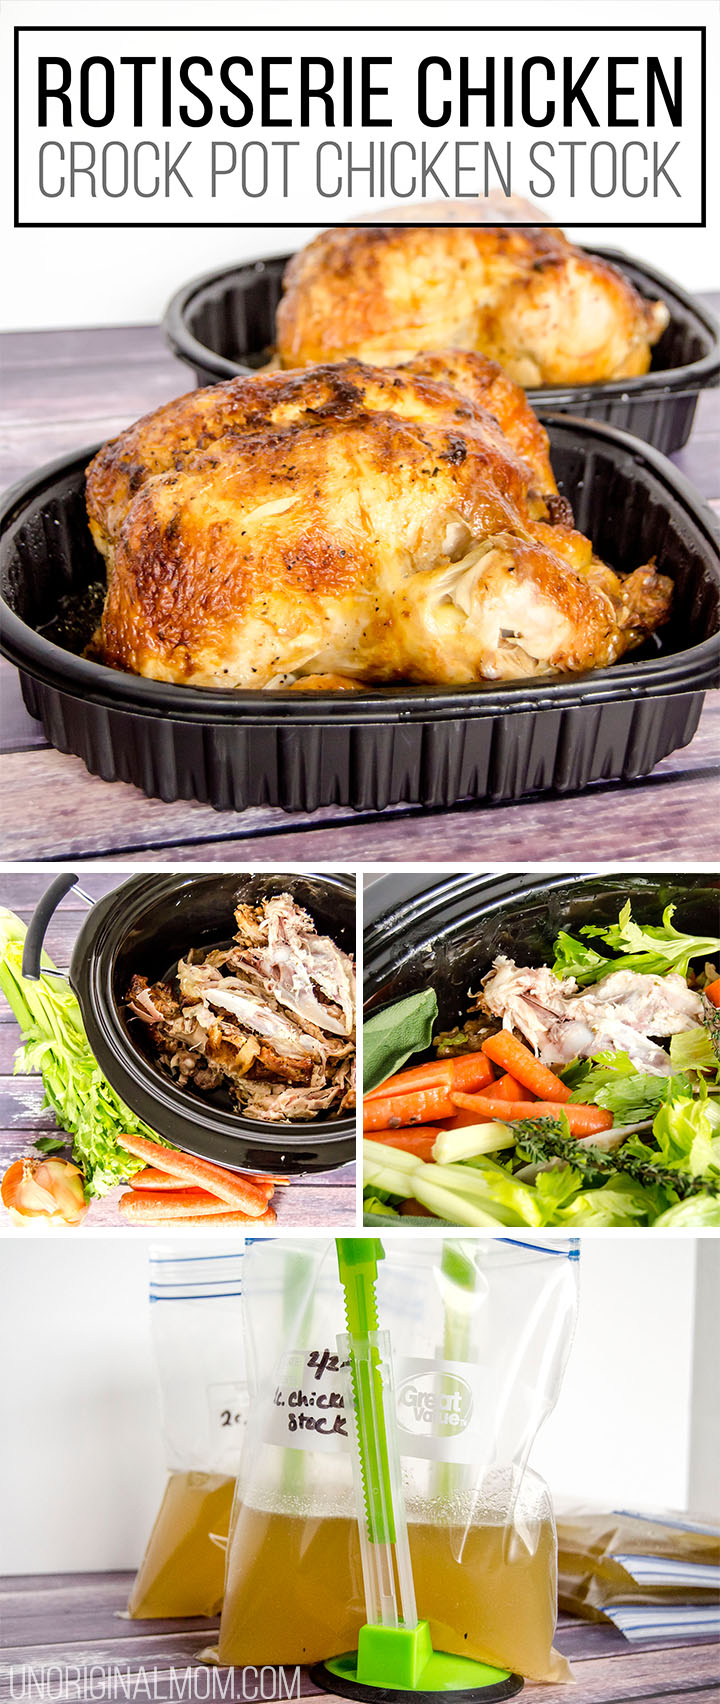 How to make the most delicious chicken stock in your crock pot with a rotisserie chicken - so cheap and easy! | crock pot chicken stock | rotisserie chicken stock | budget friendly meal planning